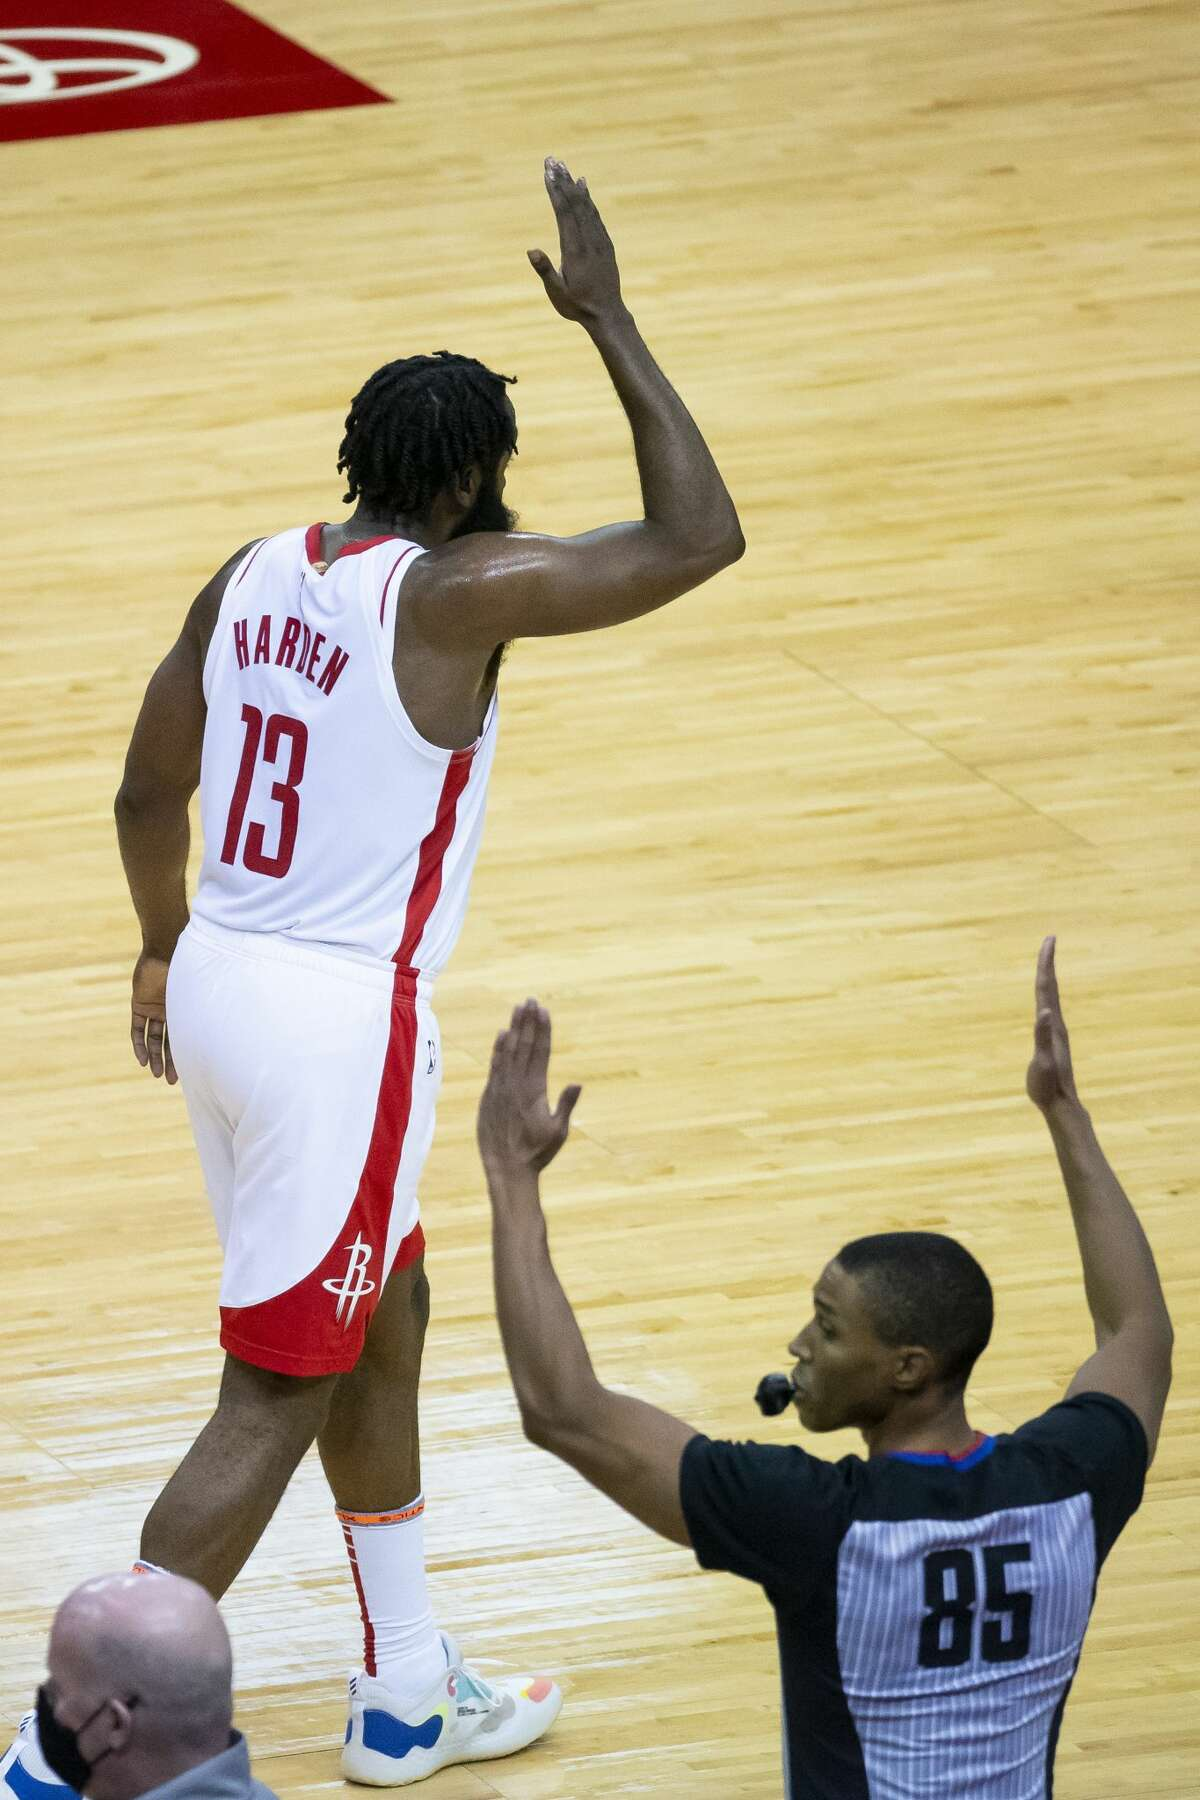 Houston Rockets guard James Harden (13) celebrates a three point shot during the second quarter of an NBA game between the Houston Rockets and Orlando Magic on Friday, Jan. 8, 2021, at Toyota Center in Houston.